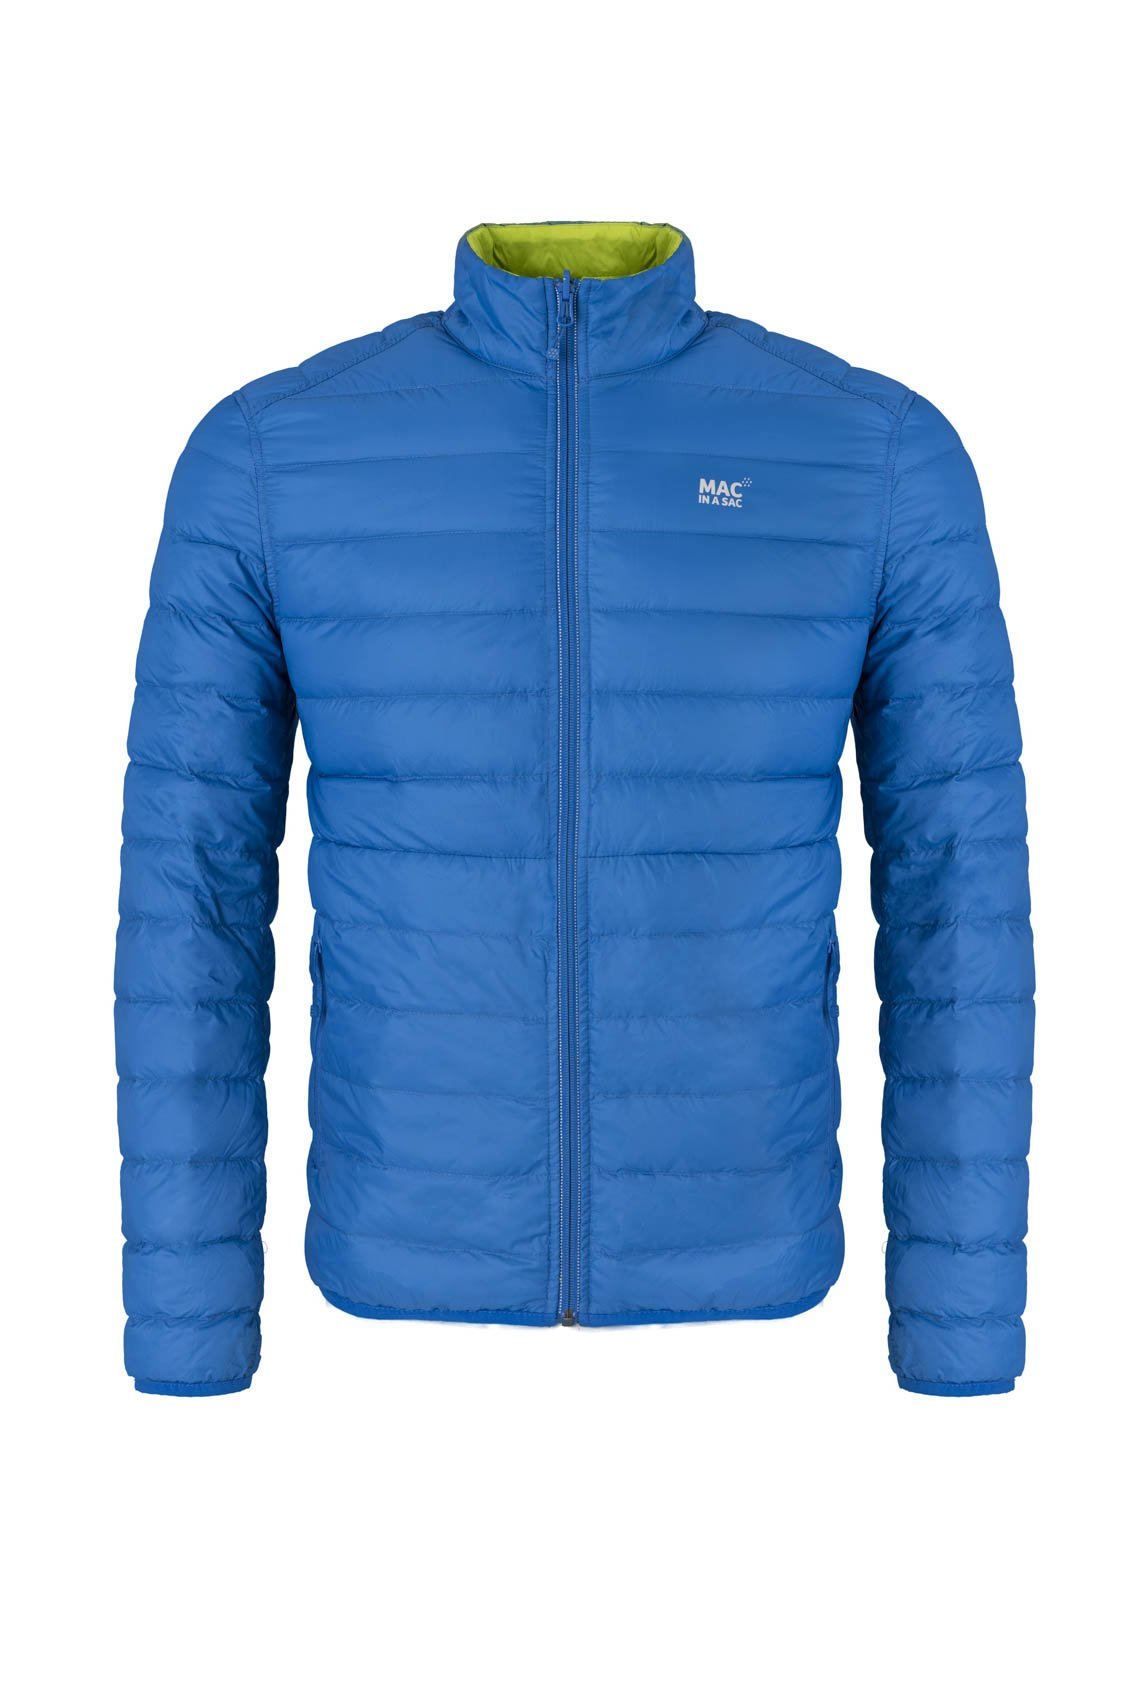 2f2eedeb7 Polar Mens Down Jacket - Insulated & Packable | Mac in a Sac